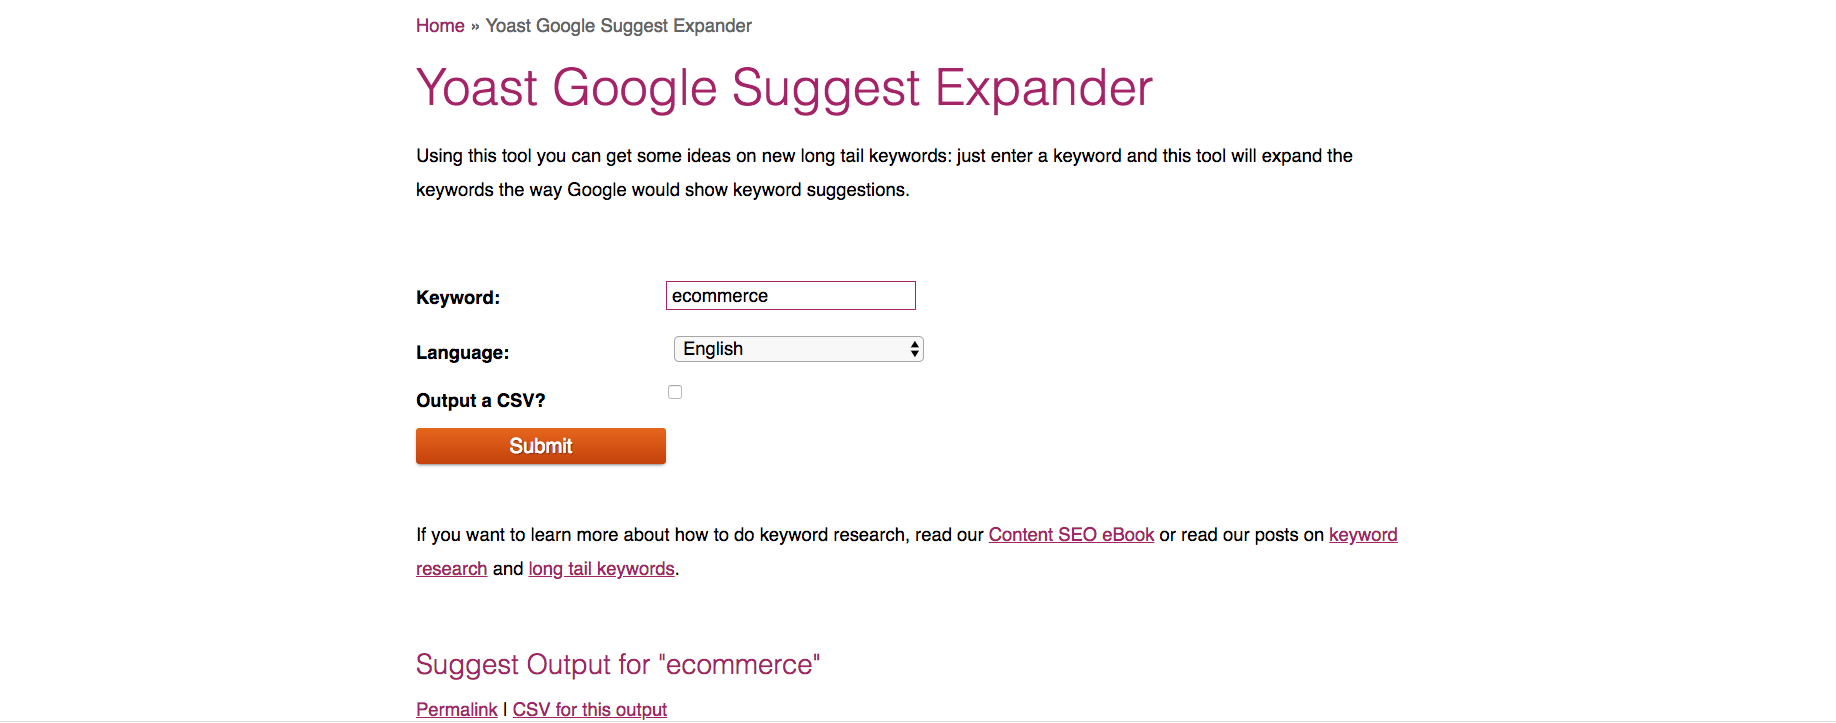 Image showing Yoast's Google Suggest Expander, an essential e-commerce marketing tool for more in-depth keyword research.